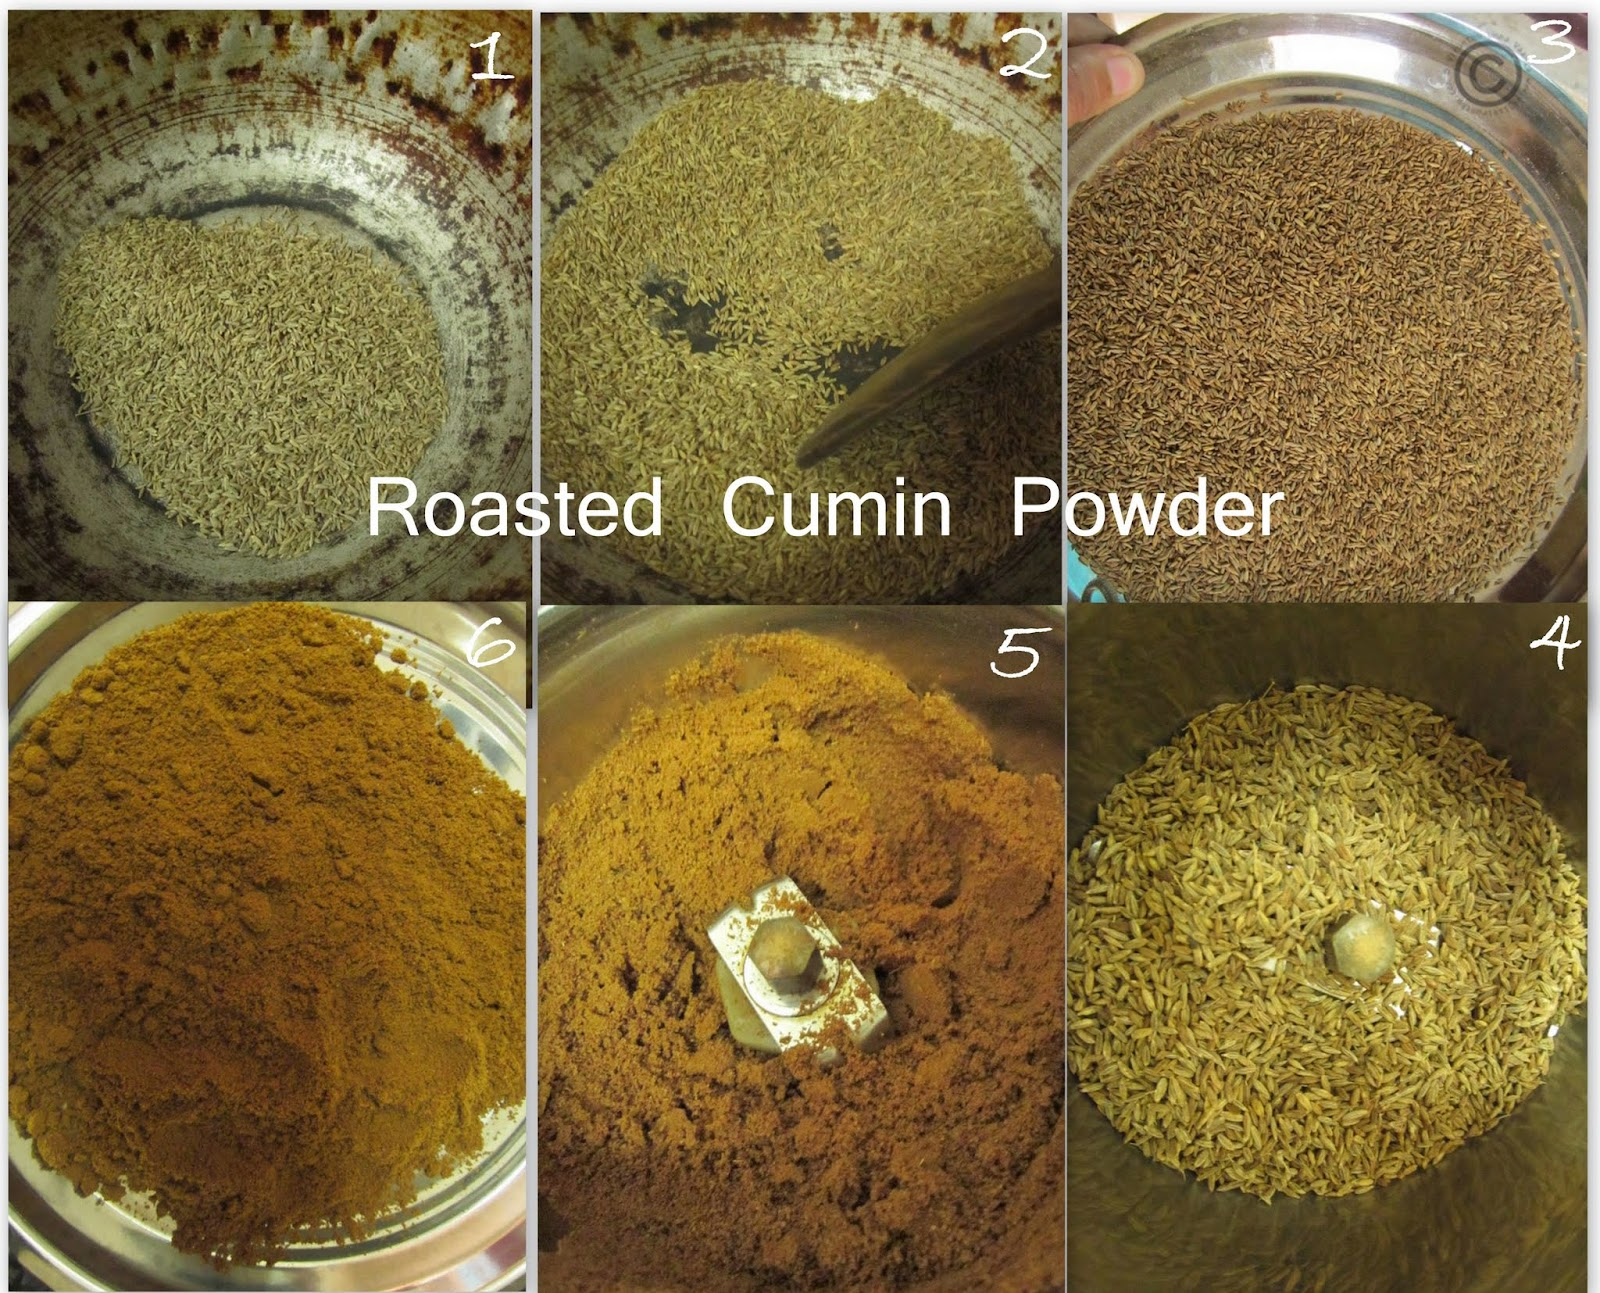 ... HOMEMADE ROASTED CUMIN POWDER I DIY -CUMIN POWDER I BASICS OF KITCHEN